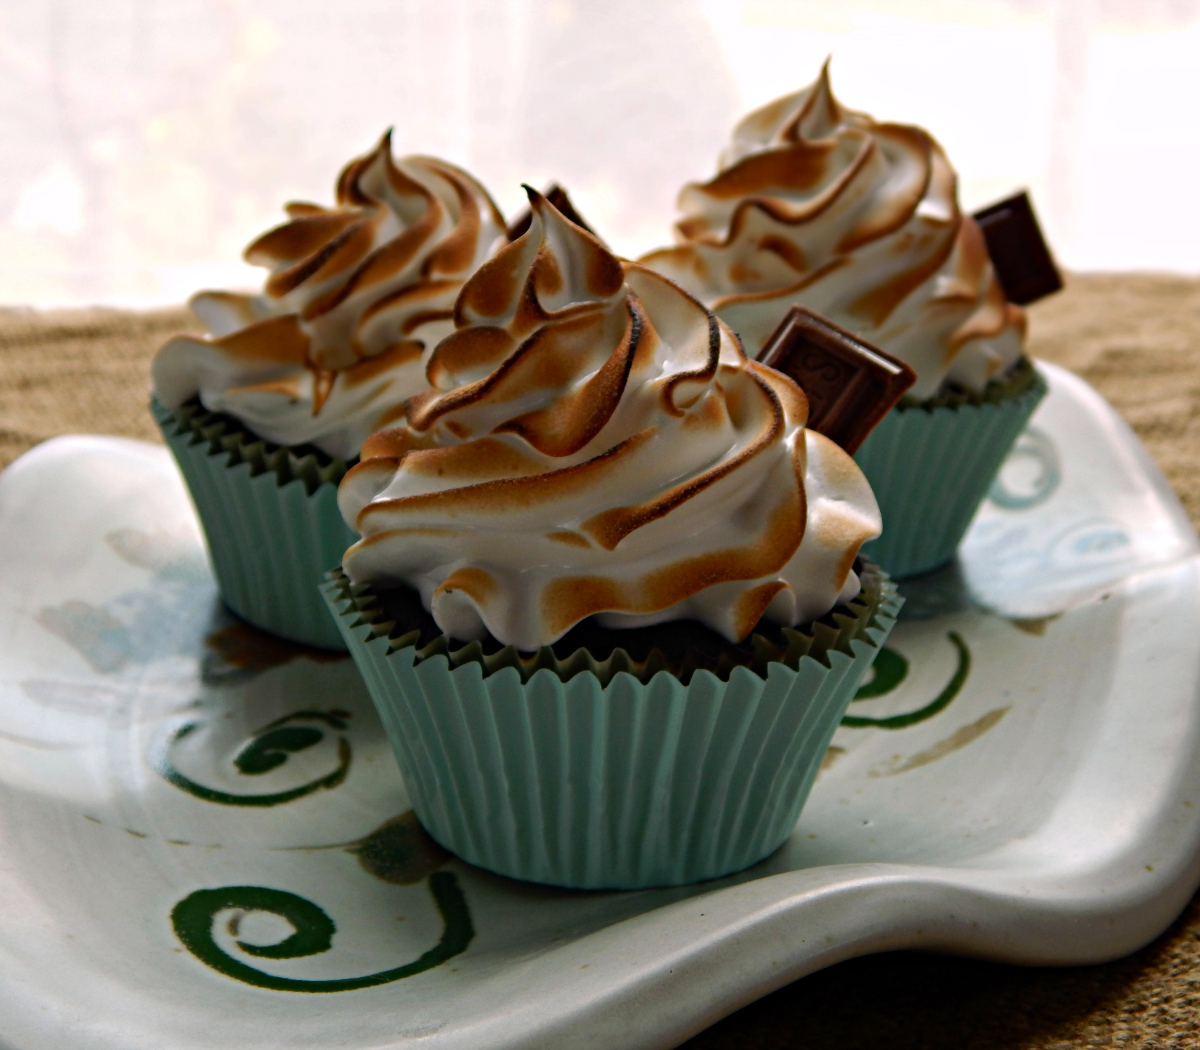 S'more Cupcakes with Swiss Meringue Frosting and truffle filling